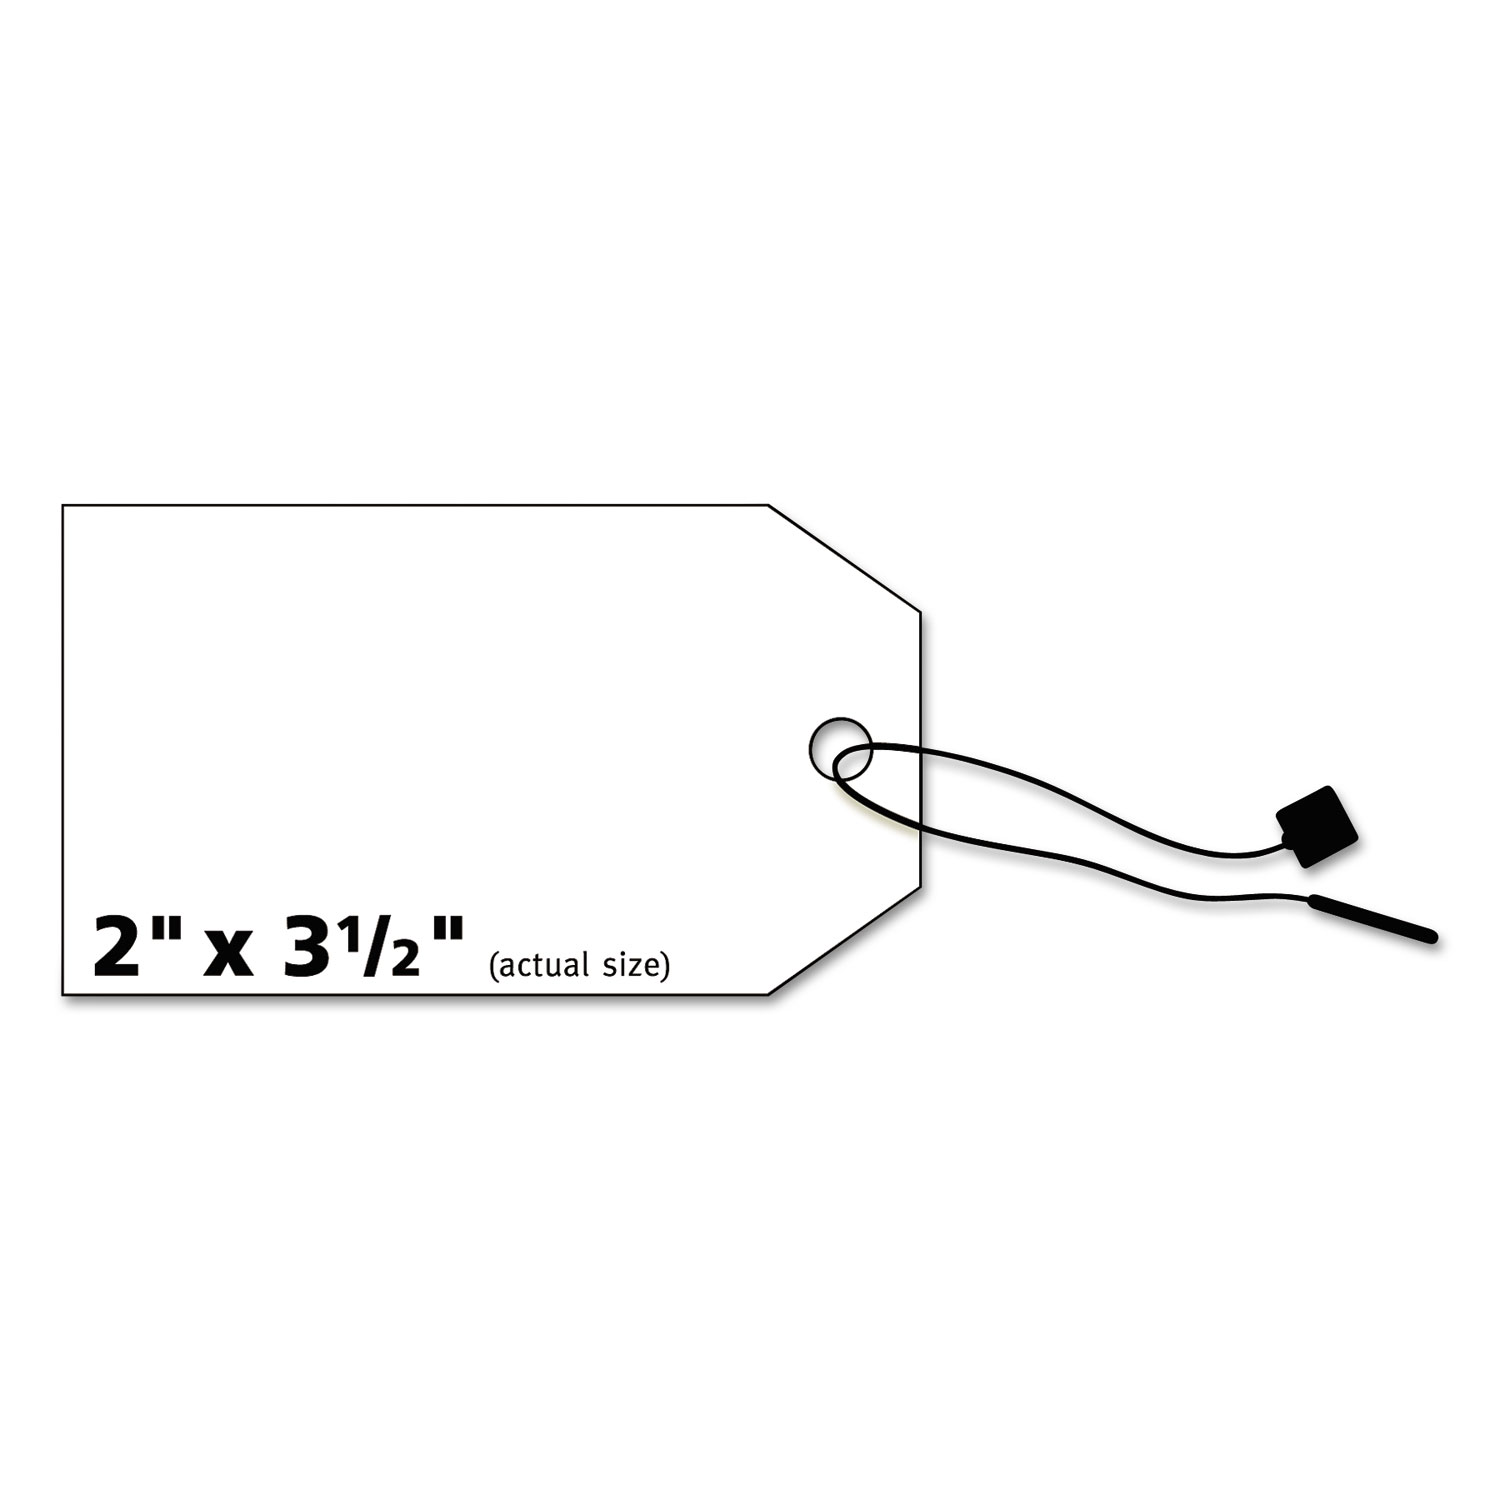 image regarding Printable Tags With Strings called Printable Rectangular Tags with Strings, 2 x 3 1/2, Matte White, 96/Pack